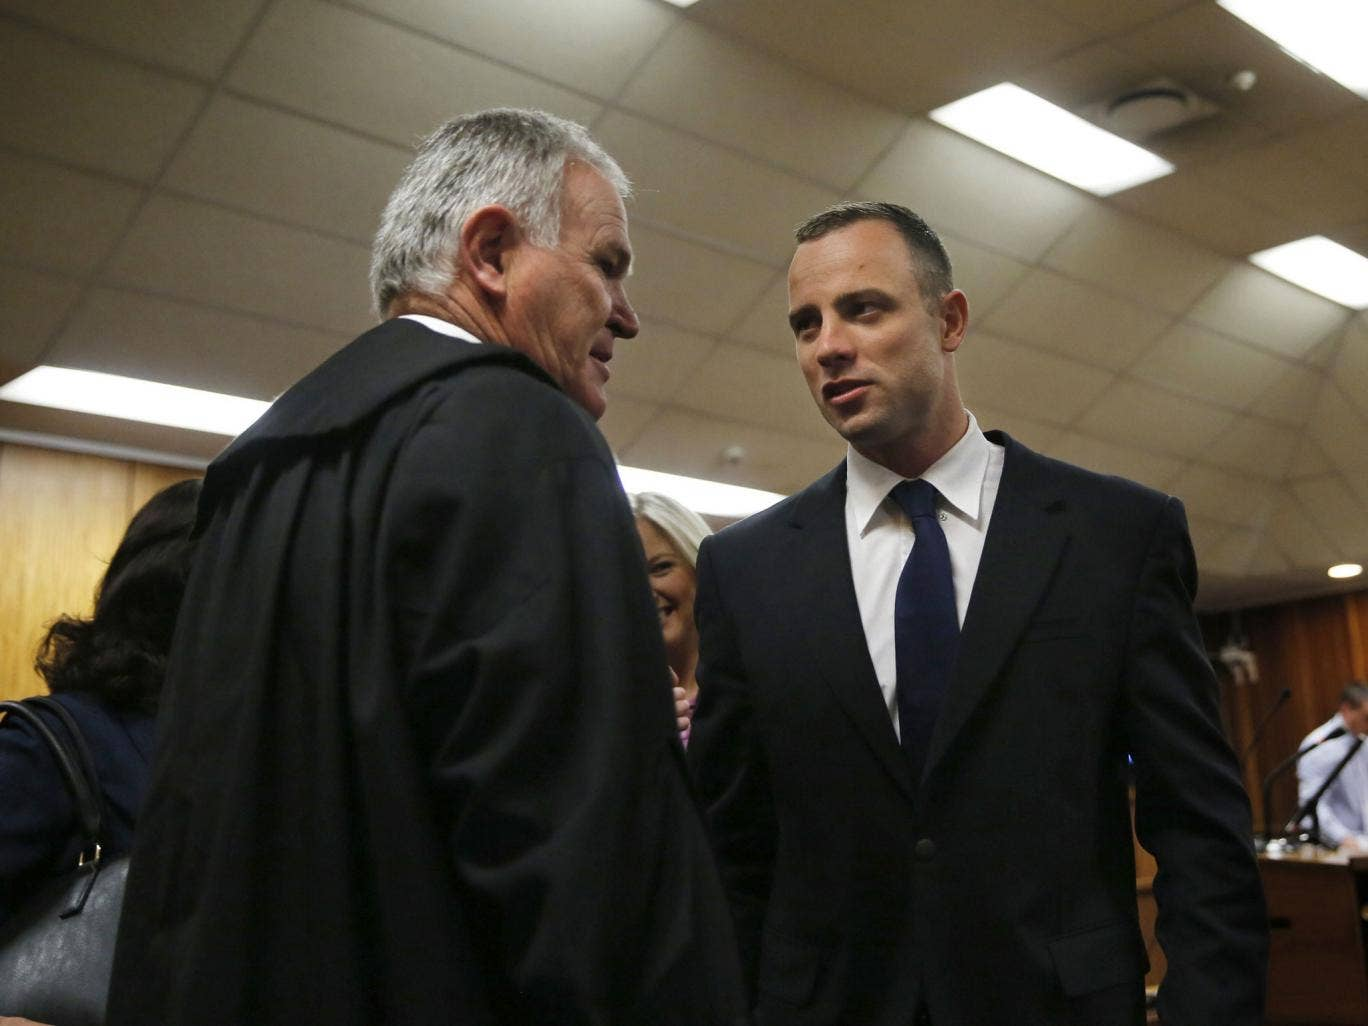 Oscar Pistorius  speaks with his defence lawyer Barry Roux at the North Gauteng High Court in Pretoria prior to a hearing of his murder trial